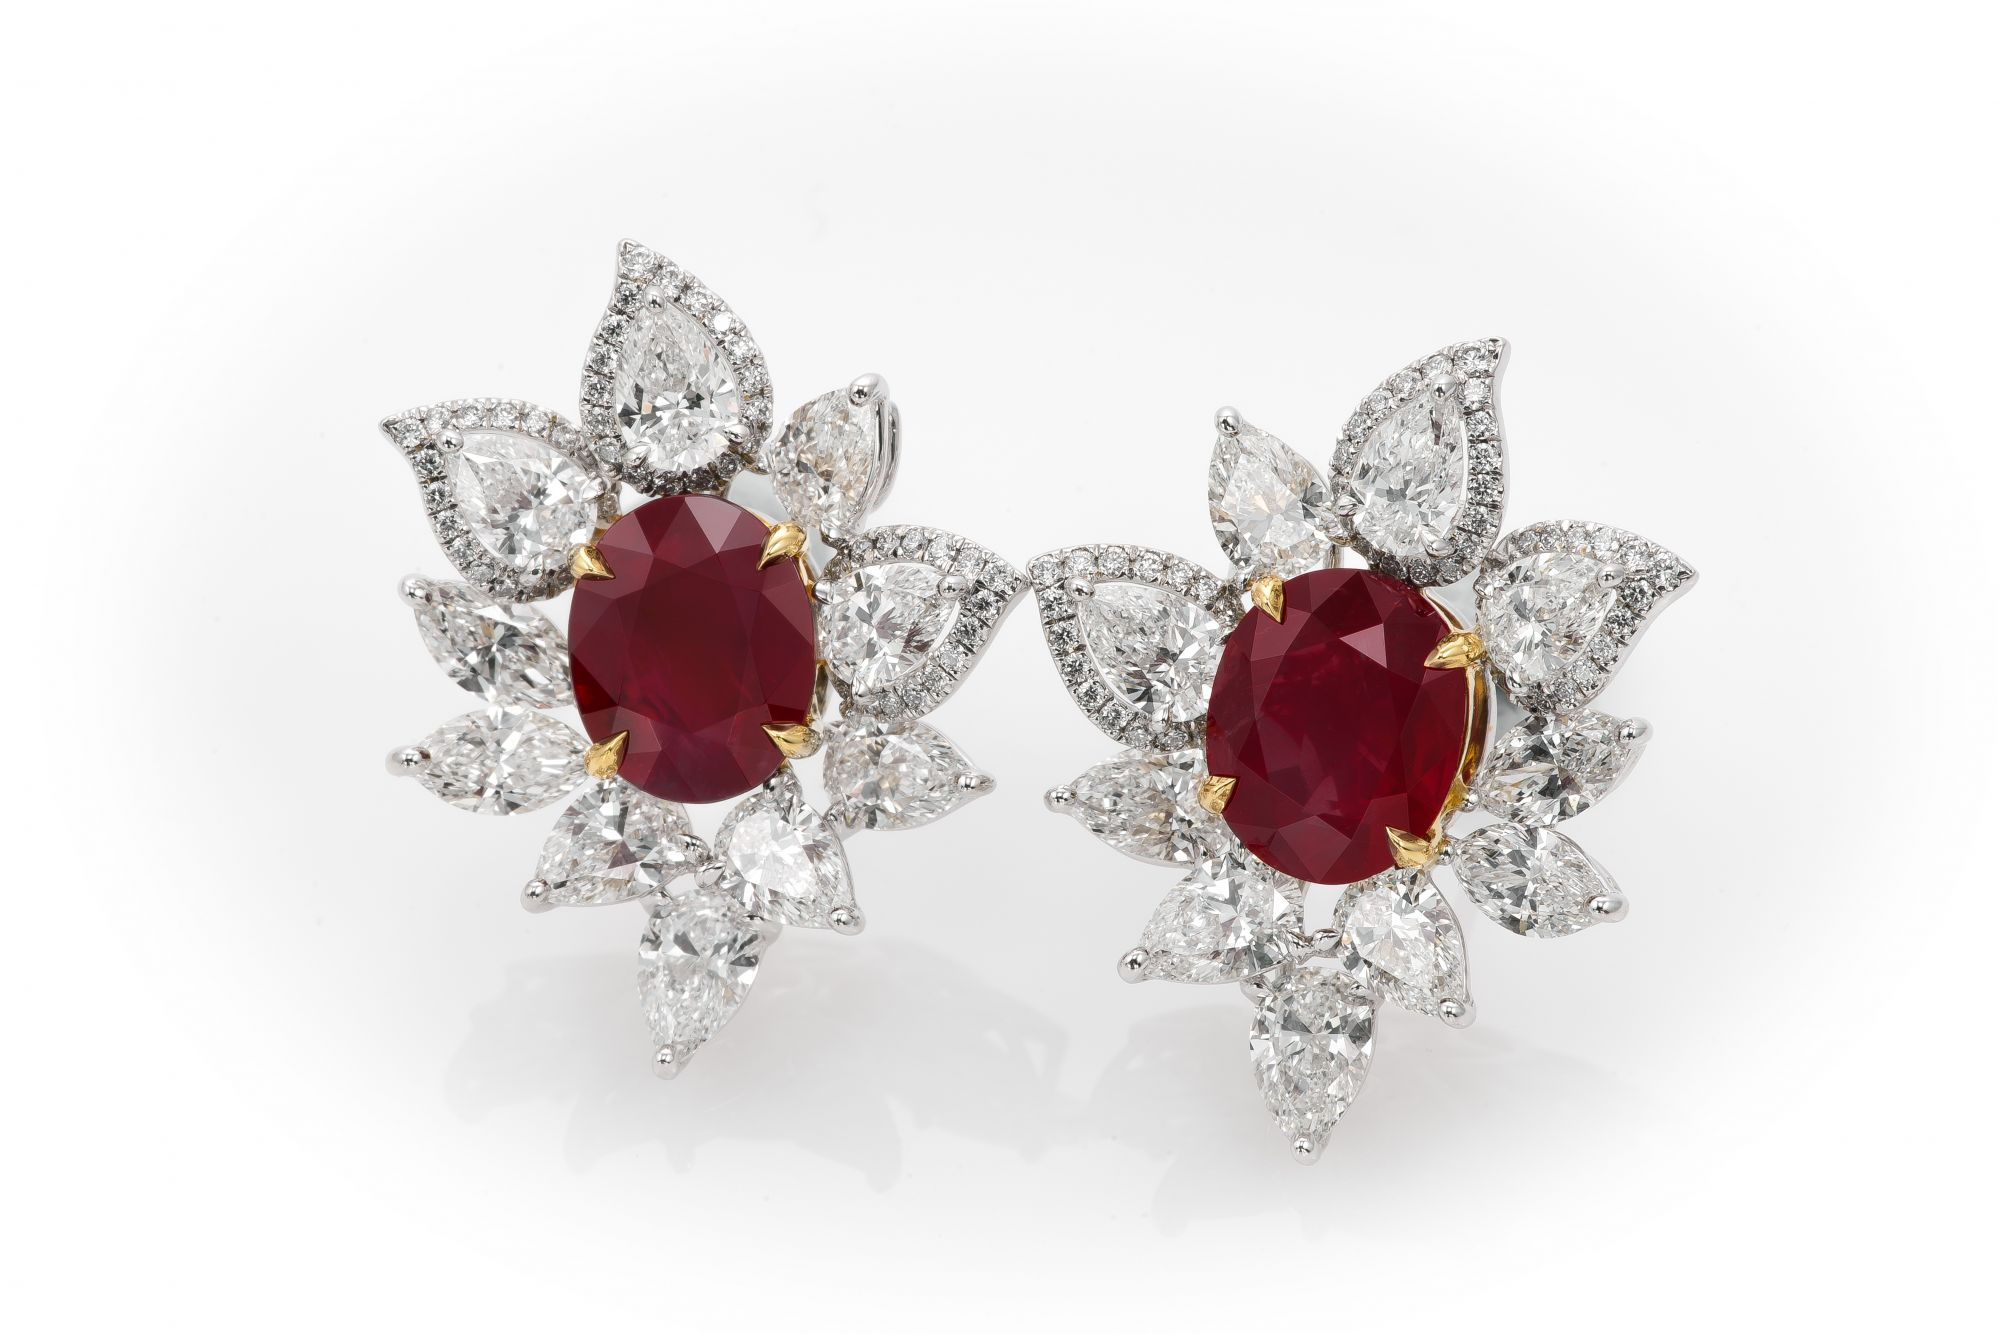 Earrings with two oval Burmese rubies totalling nearly 7ct